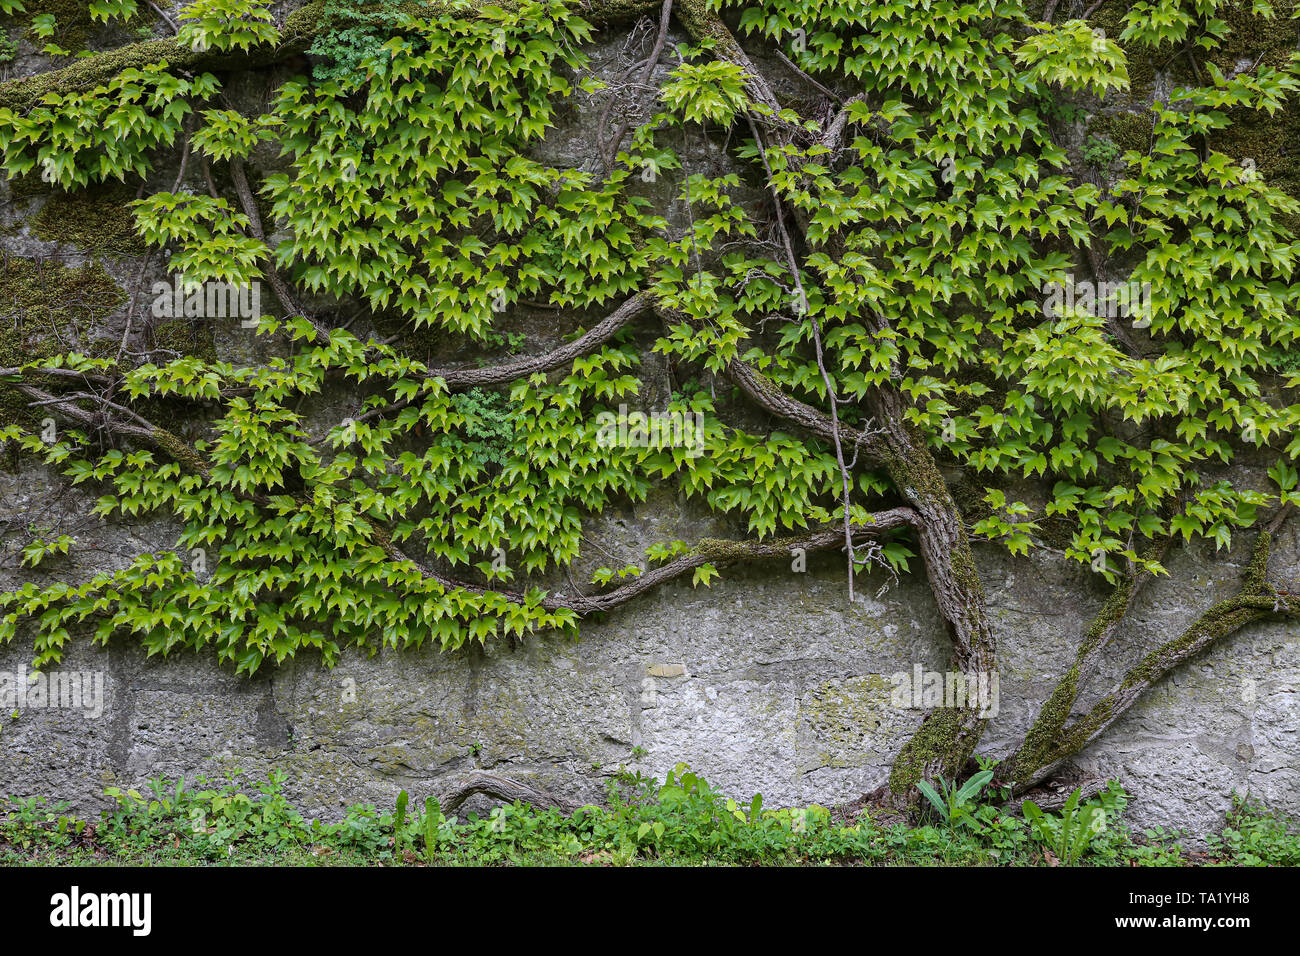 Green leaves of wild grapes weaving on a stone wall. - Stock Image